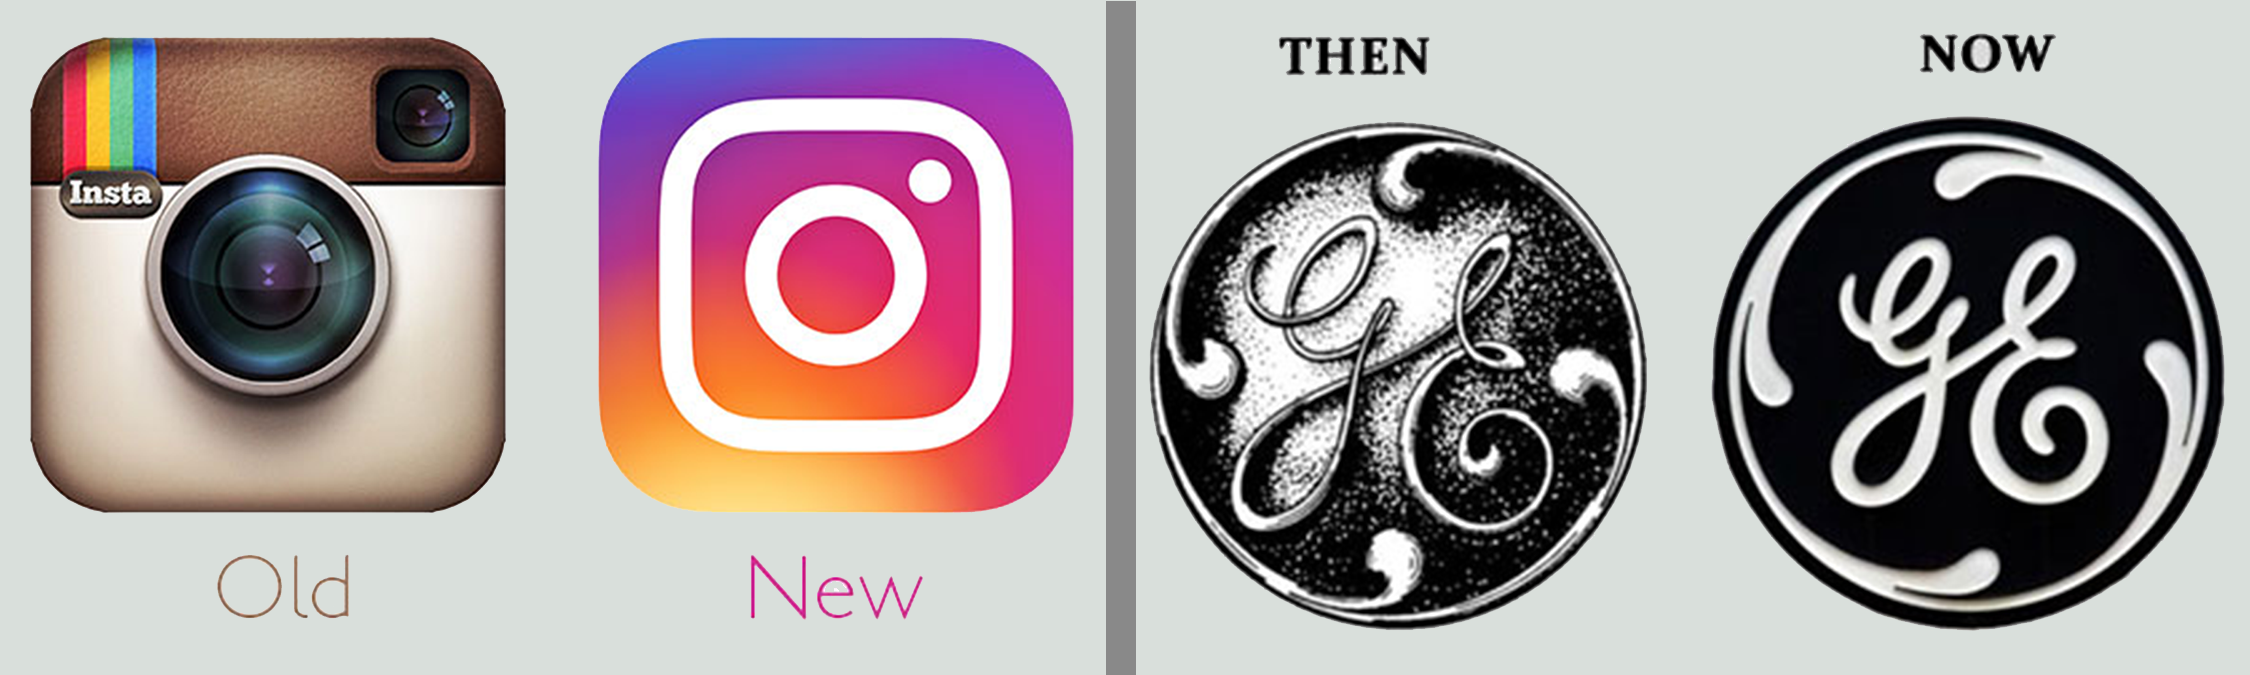 Even some of the most well-known logos and brands are opting for a more simplified version of their logo. Even Instagram recently made the change to a more simple logo. GE's simplified change has been around for a while, but it's clear to see the updated version is cleaner and easier to read.